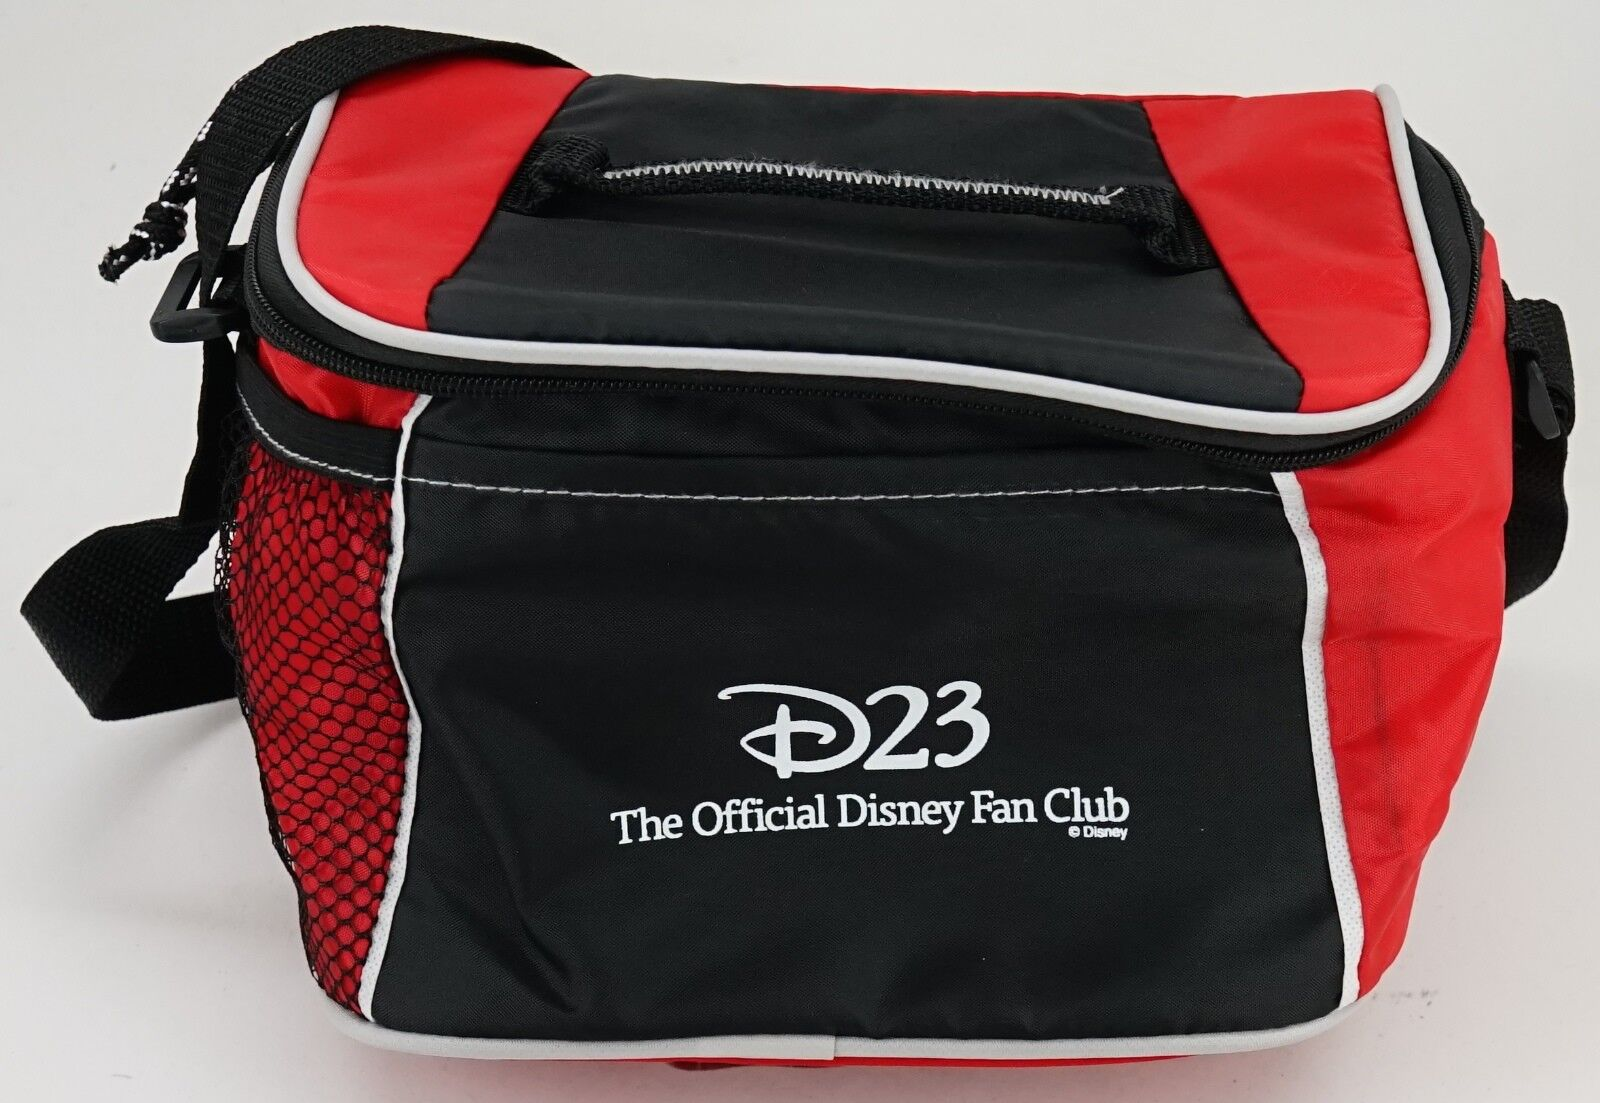 New Disney D23 Red And Black Zippered Insulated Cooler Lunch